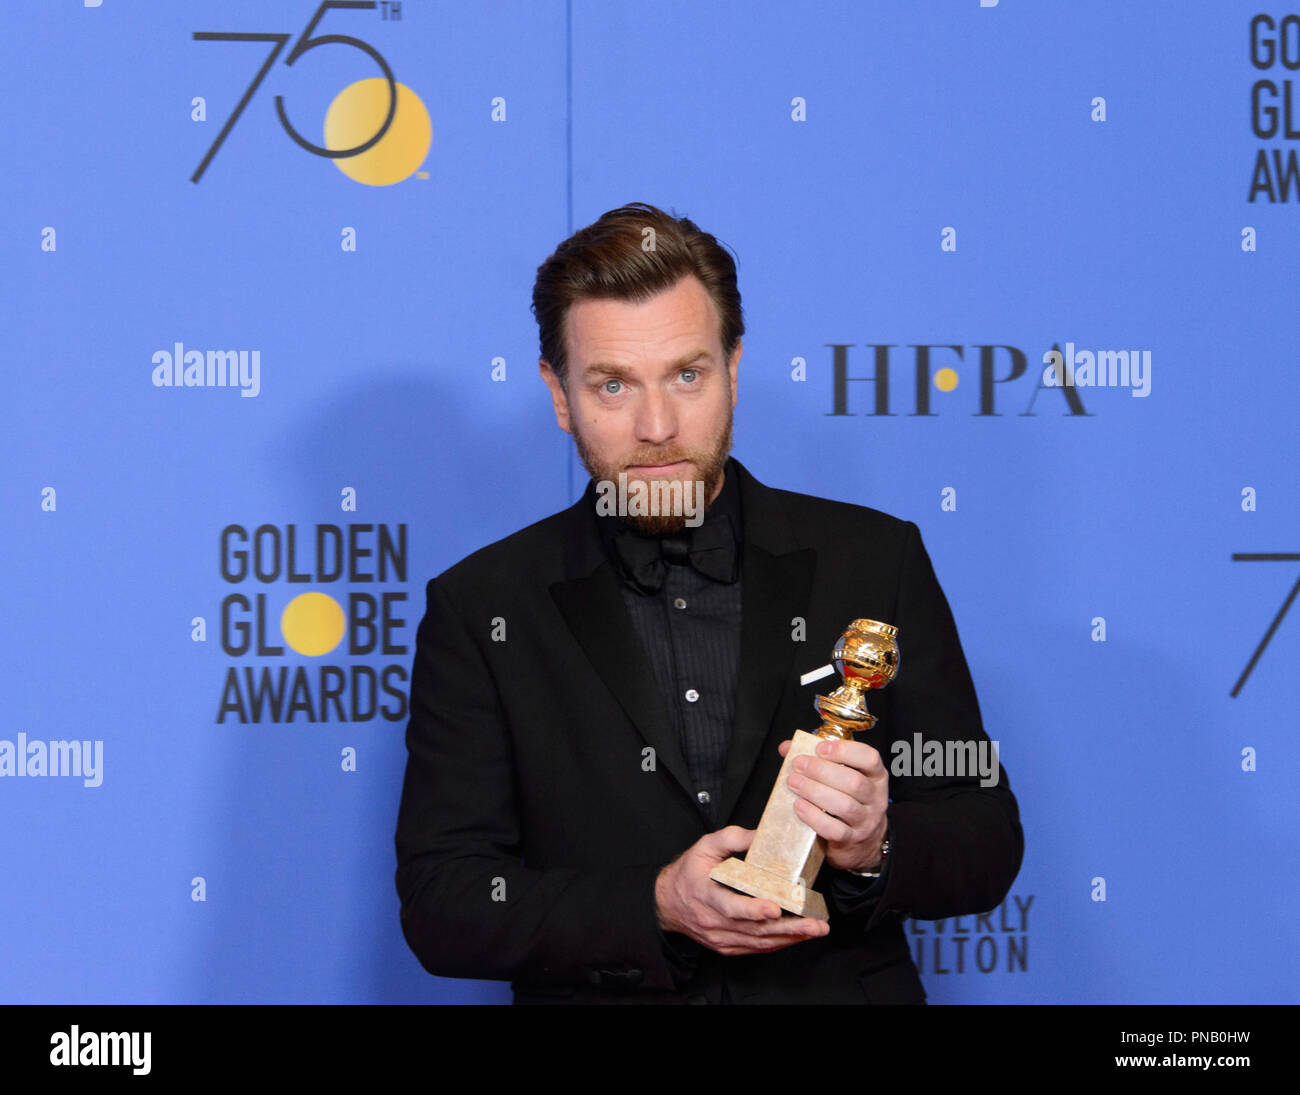 """After winning the category of BEST PERFORMANCE BY AN ACTOR IN A LIMITED SERIES OR A MOTION PICTURE MADE FOR TELEVISION for his role in """"Fargo,"""" actor Ewan McGregor poses backstage in the press room with his Golden Globe Award at the 75th Annual Golden Globe Awards at the Beverly Hilton in Beverly Hills, CA on Sunday, January 7, 2018. Stock Photo"""